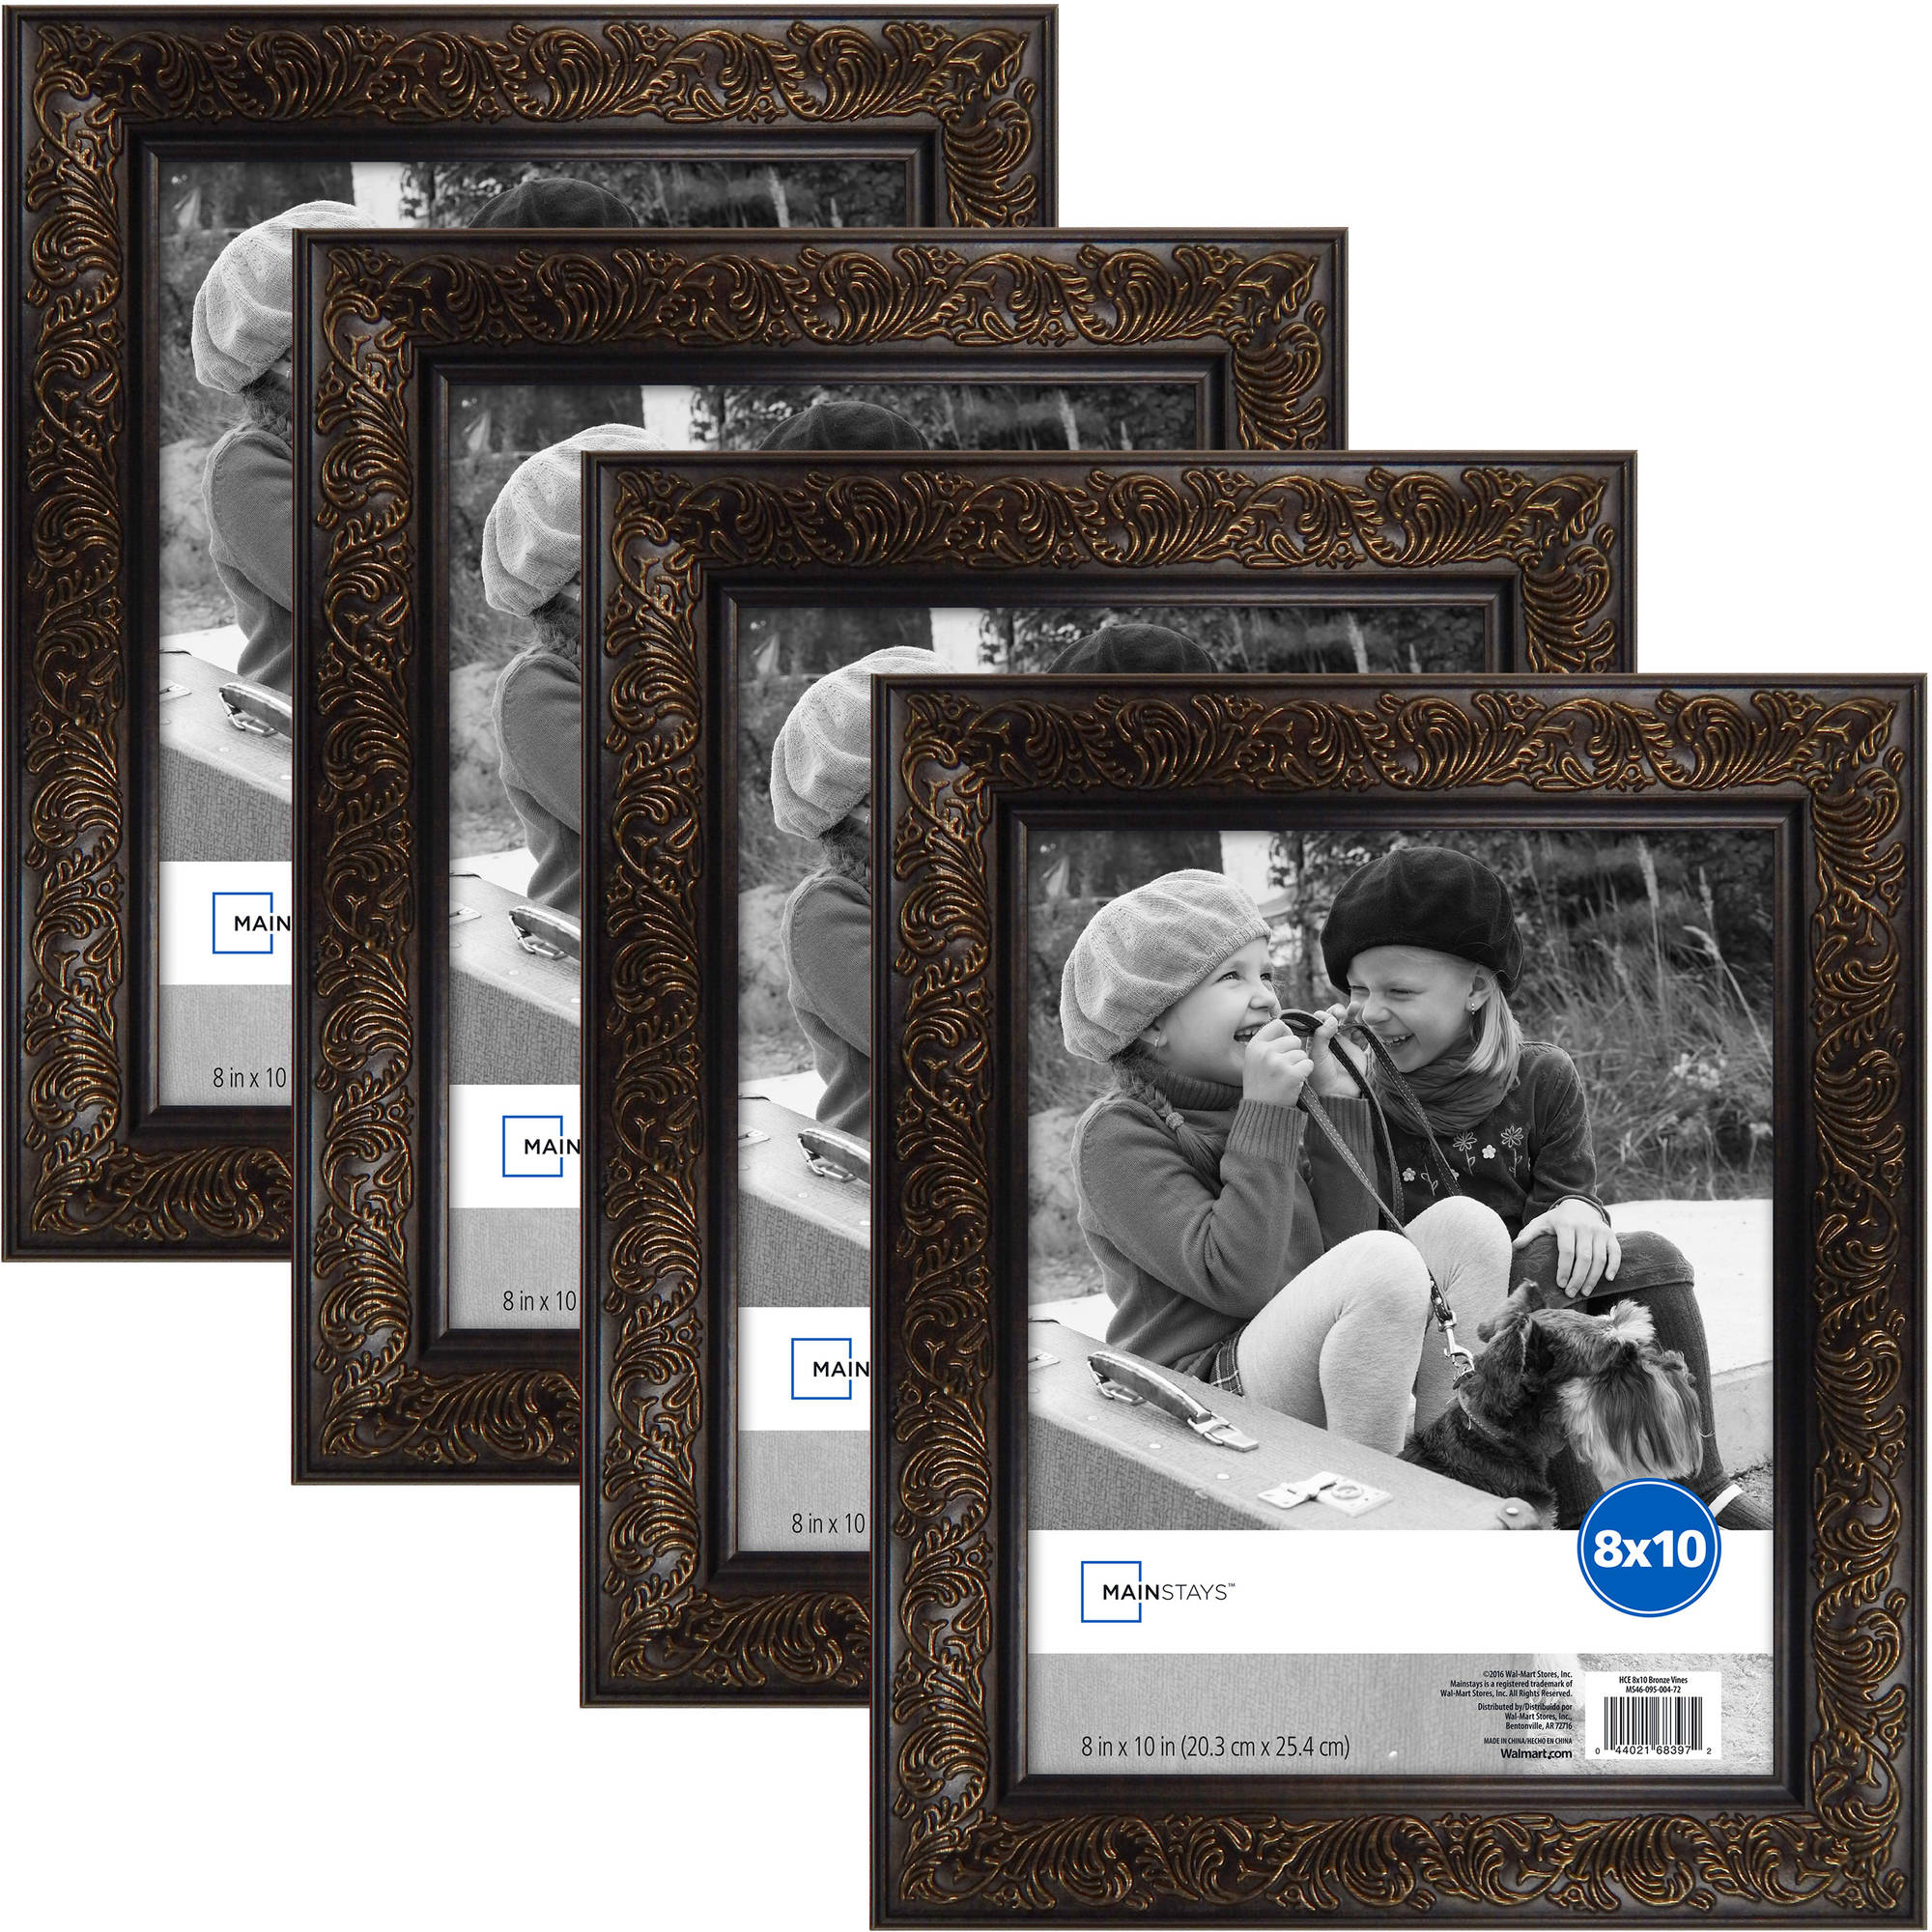 "Mainstays 8"" x 10"" Vine Frame Set, Pack of 4, Bronze Finish"